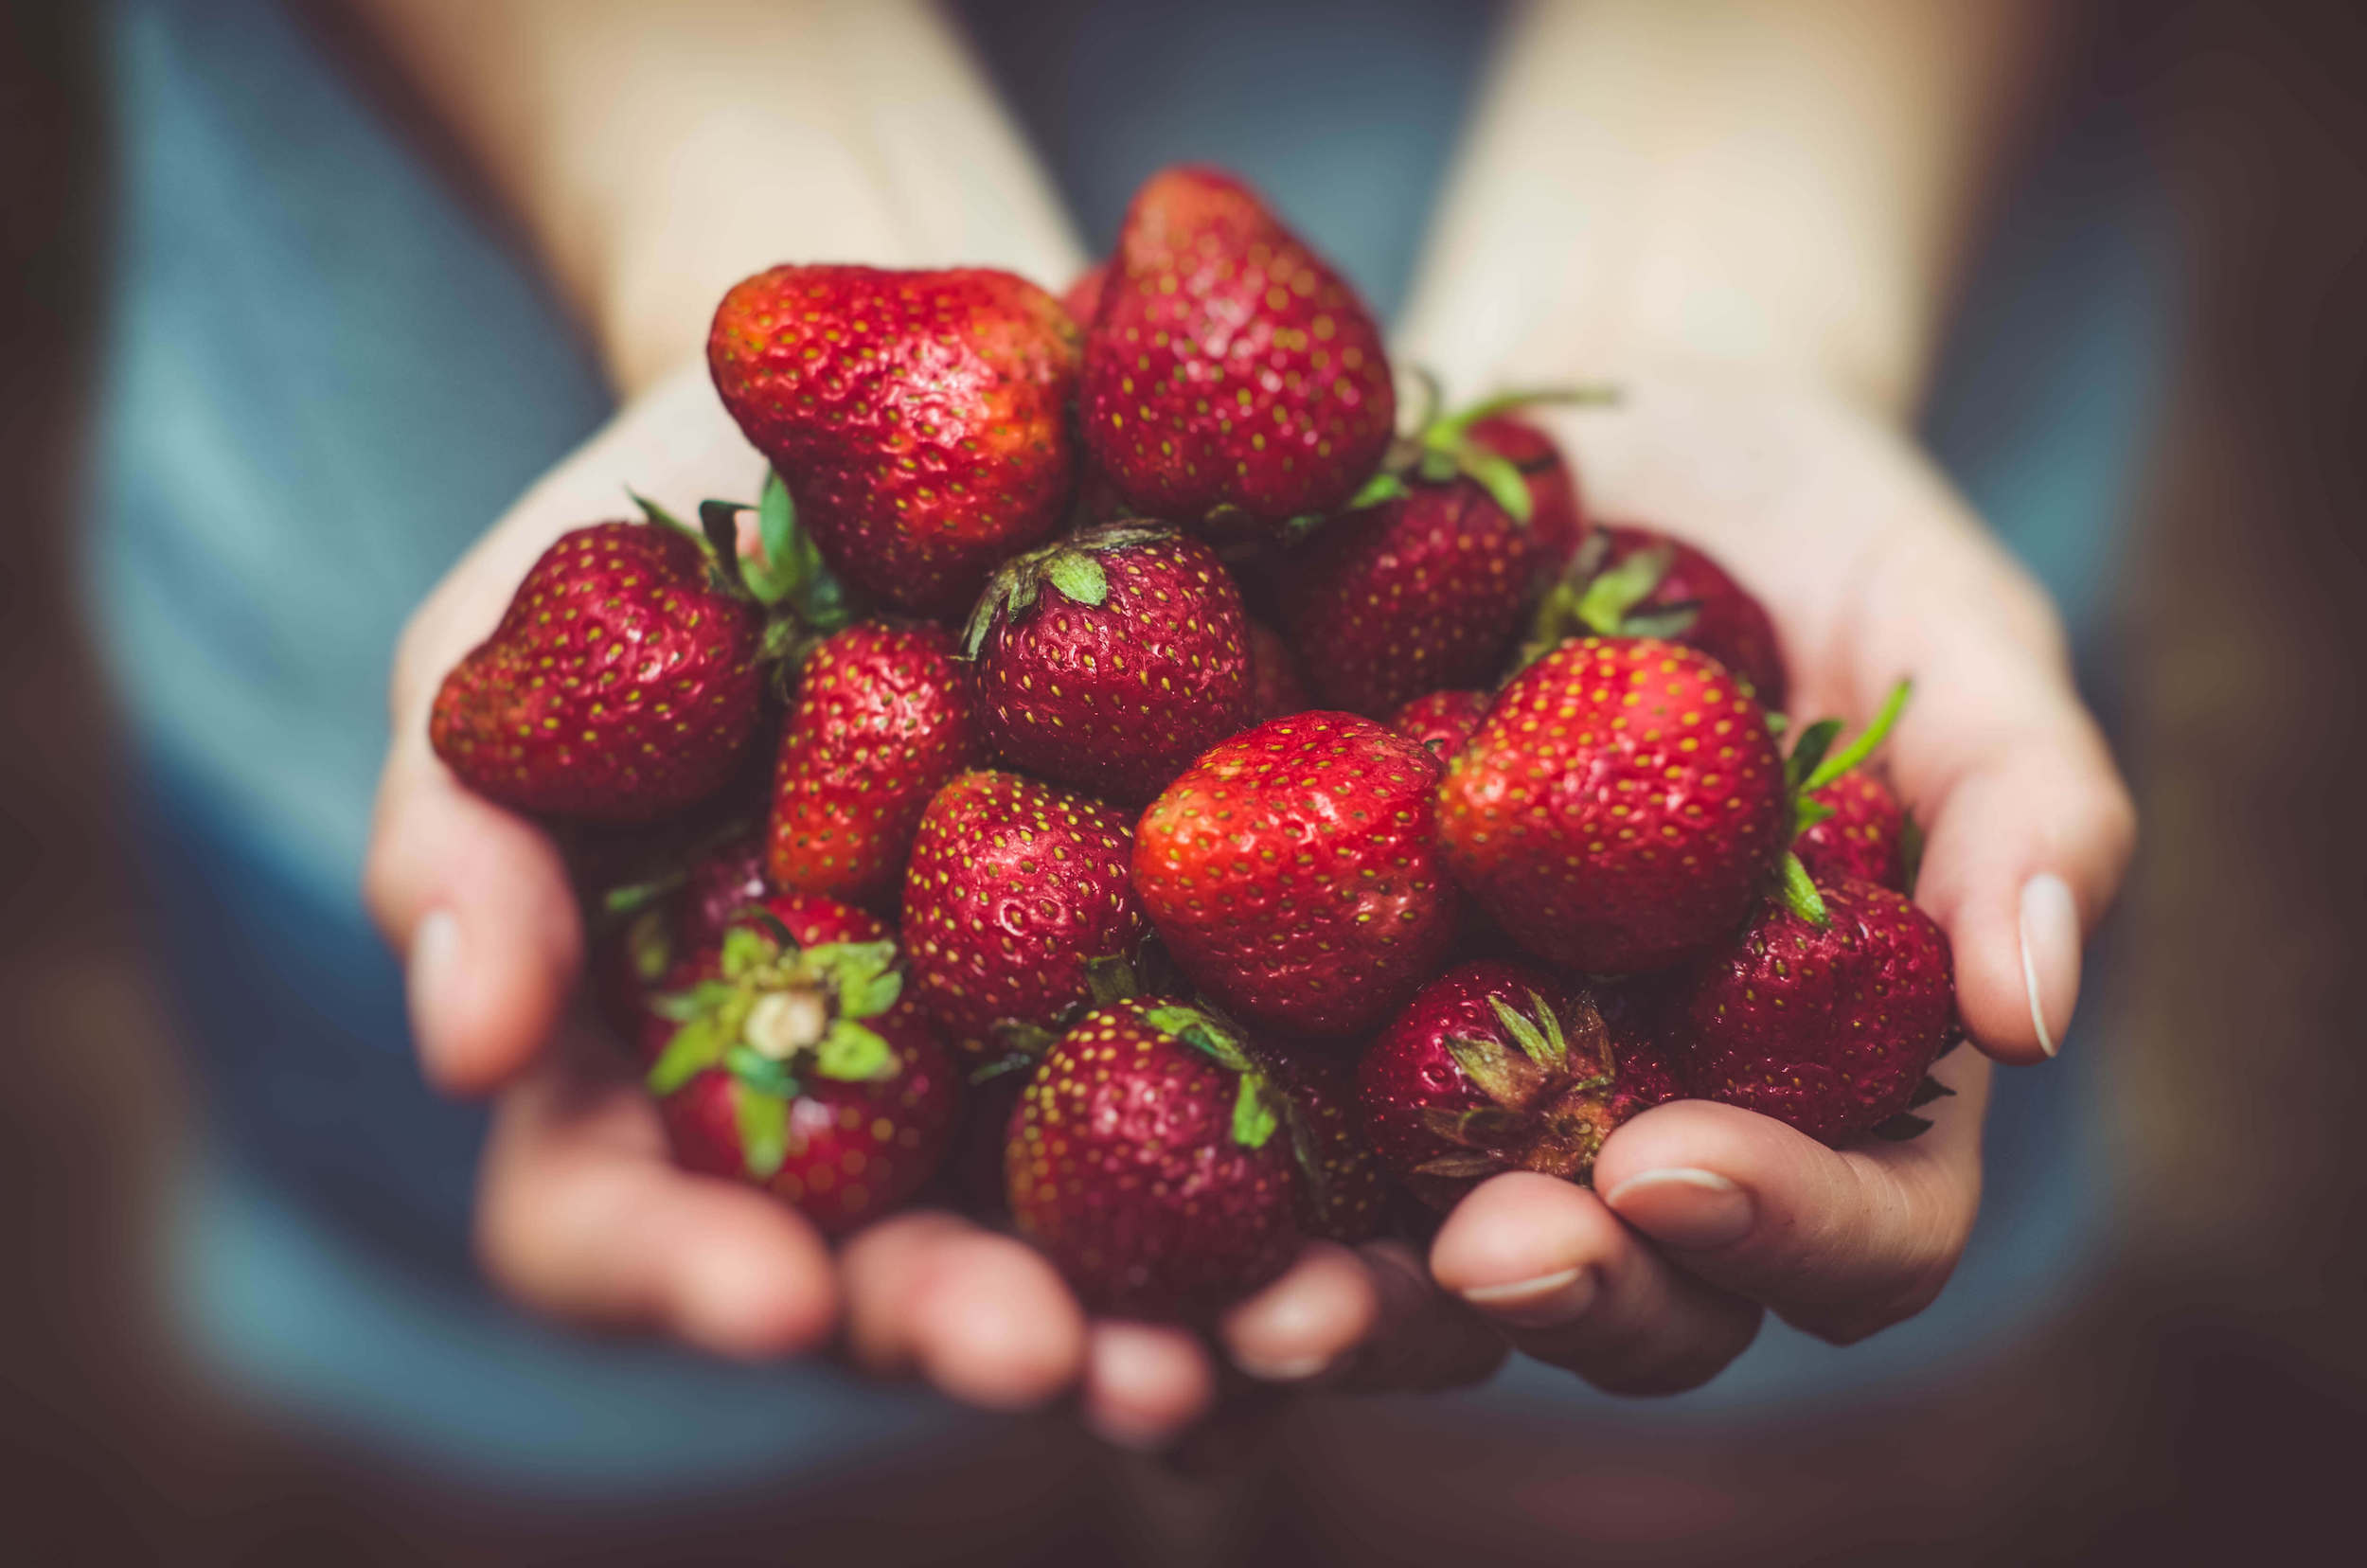 Strawberries For Juicing - The Physical Evolution